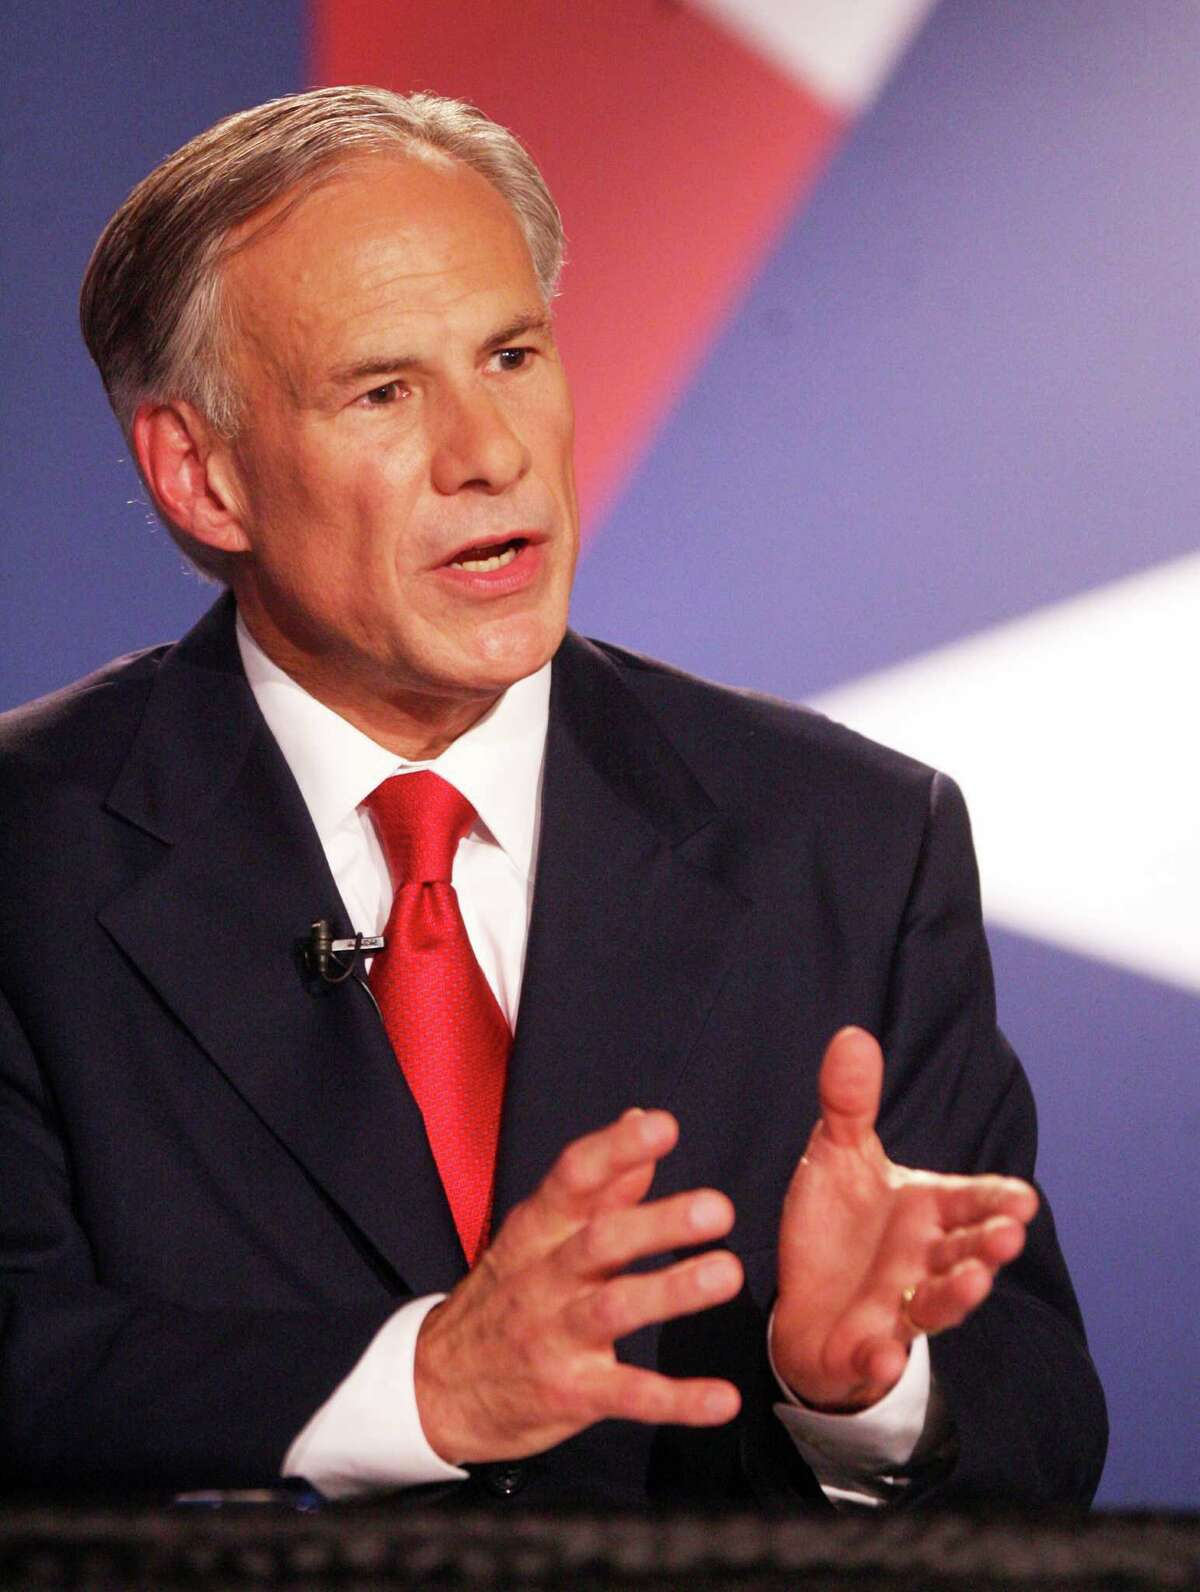 """Attorney General Greg Abbott says he's running for governor to make Texas """"even better."""""""